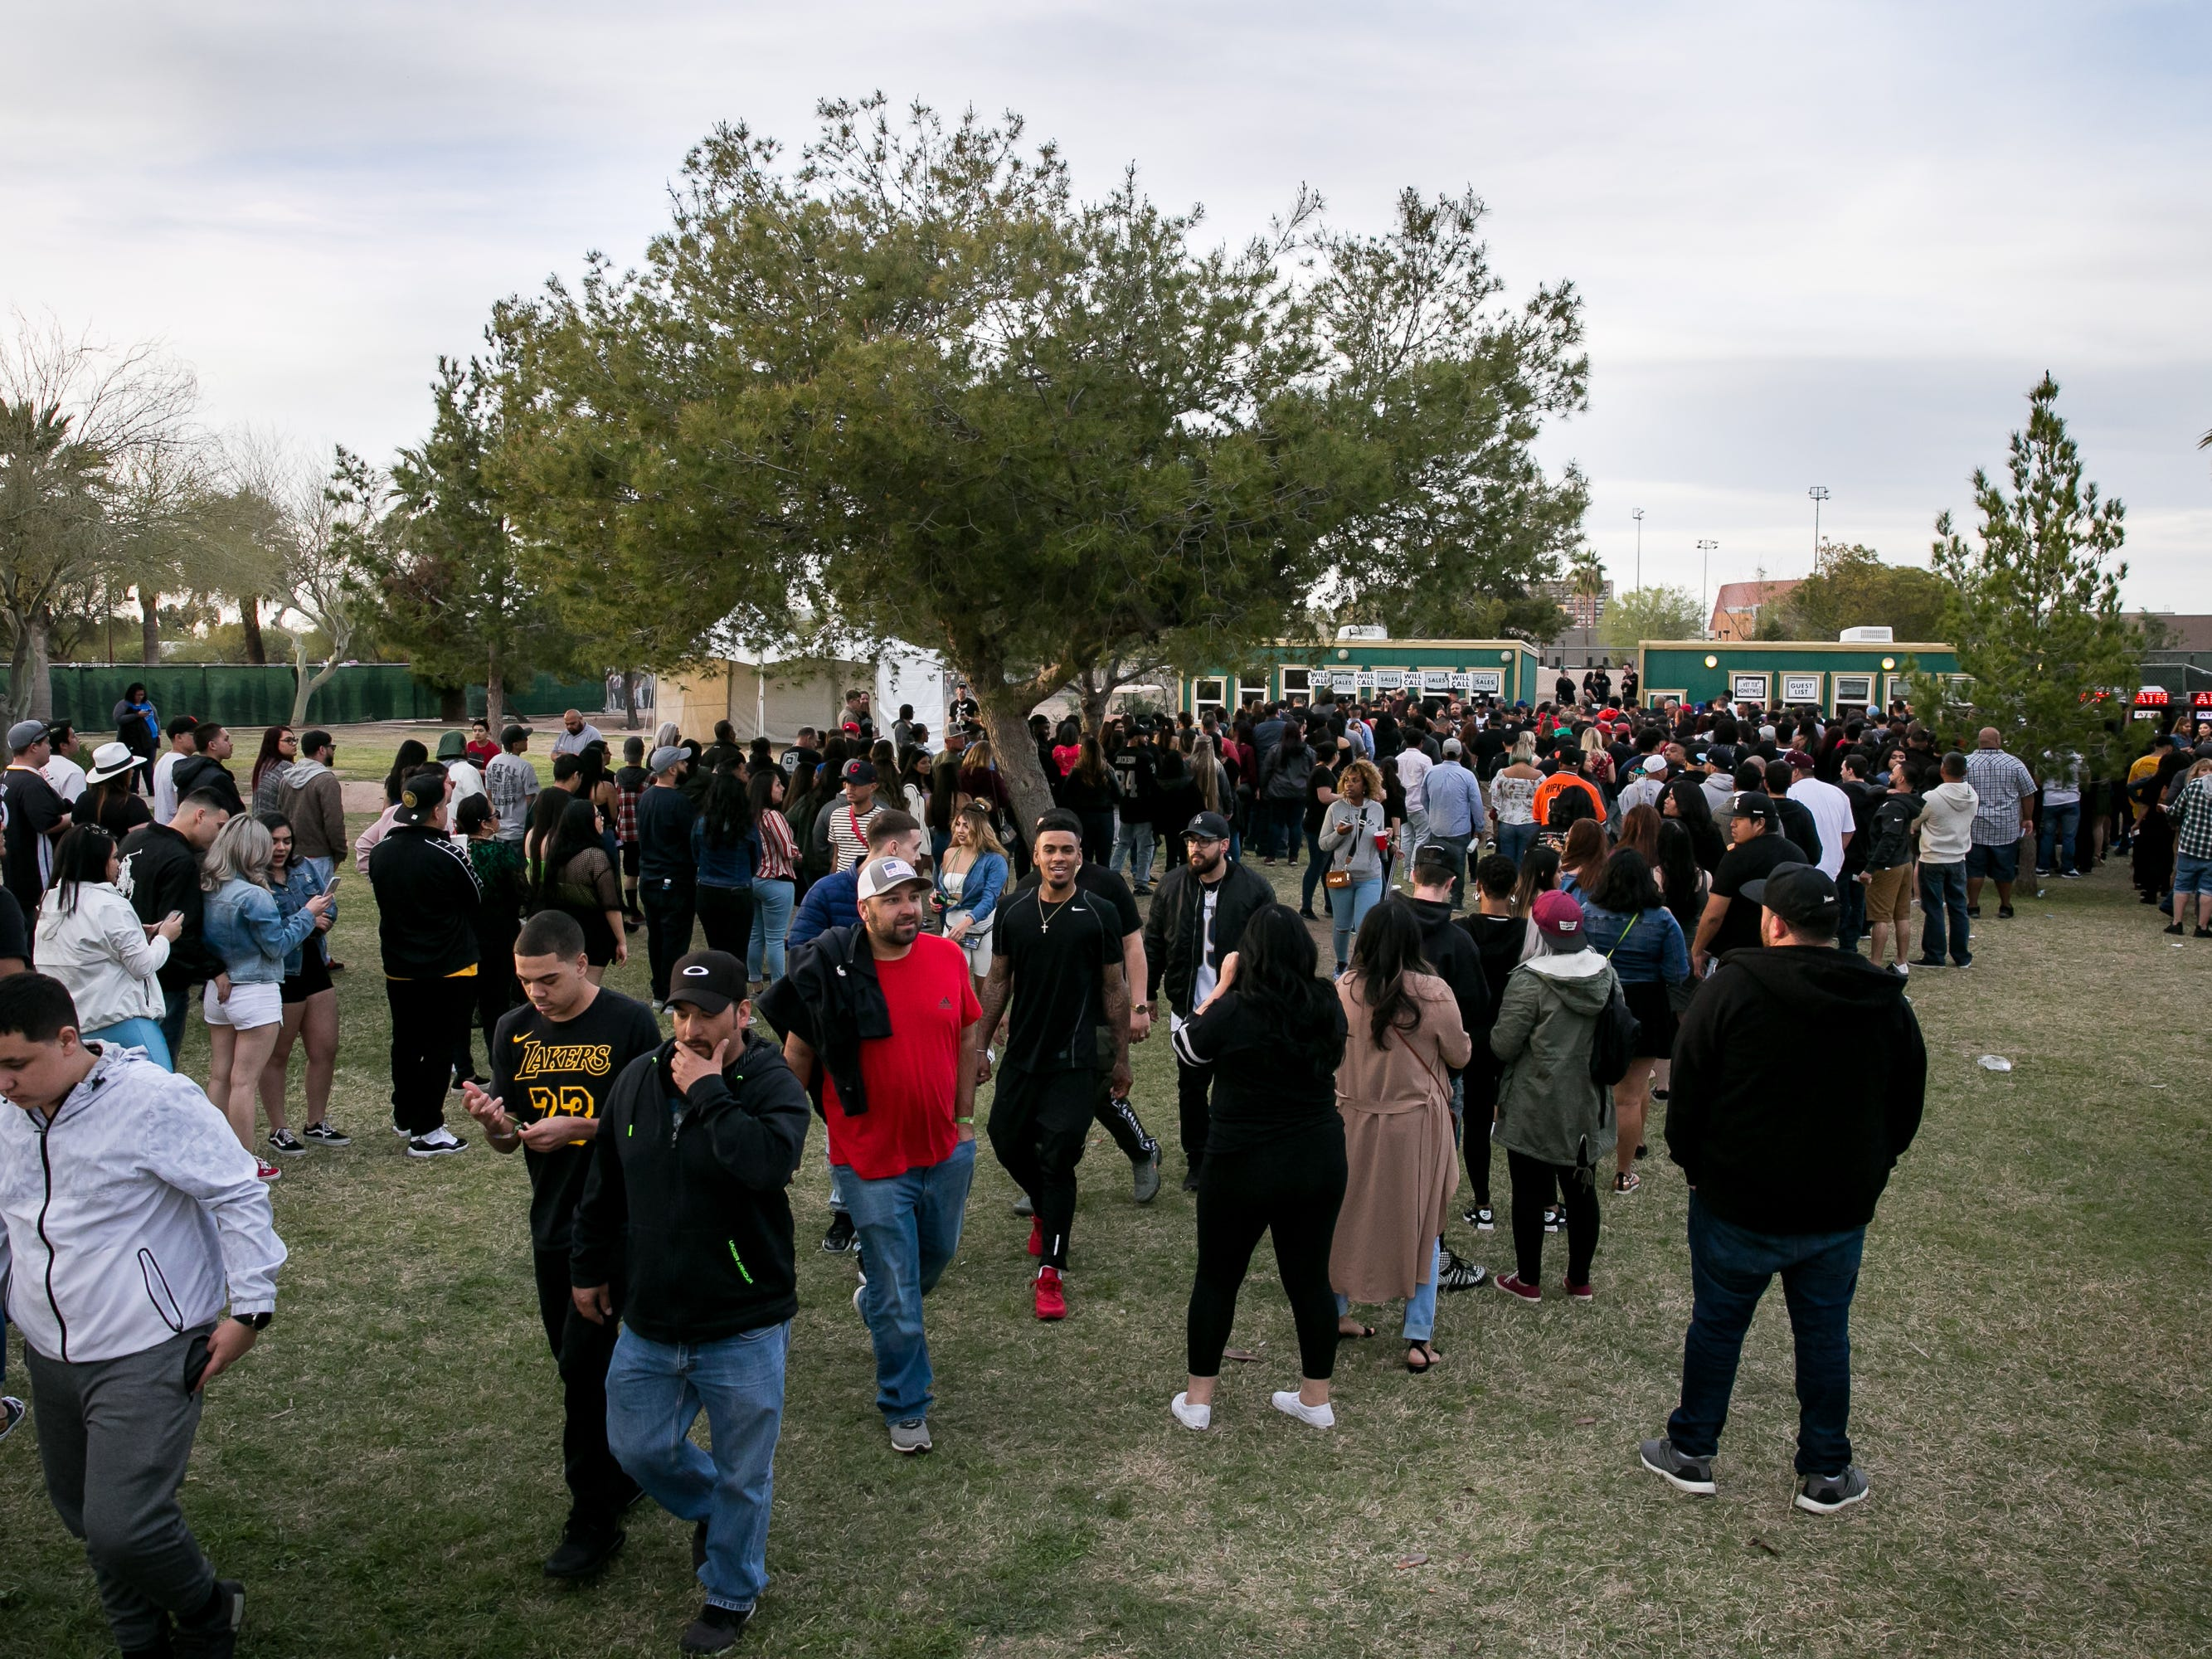 Fans encountered long ticketing lines at Pot of Gold Music Festival at Steele Indian School Park on Friday, March 15, 2019.